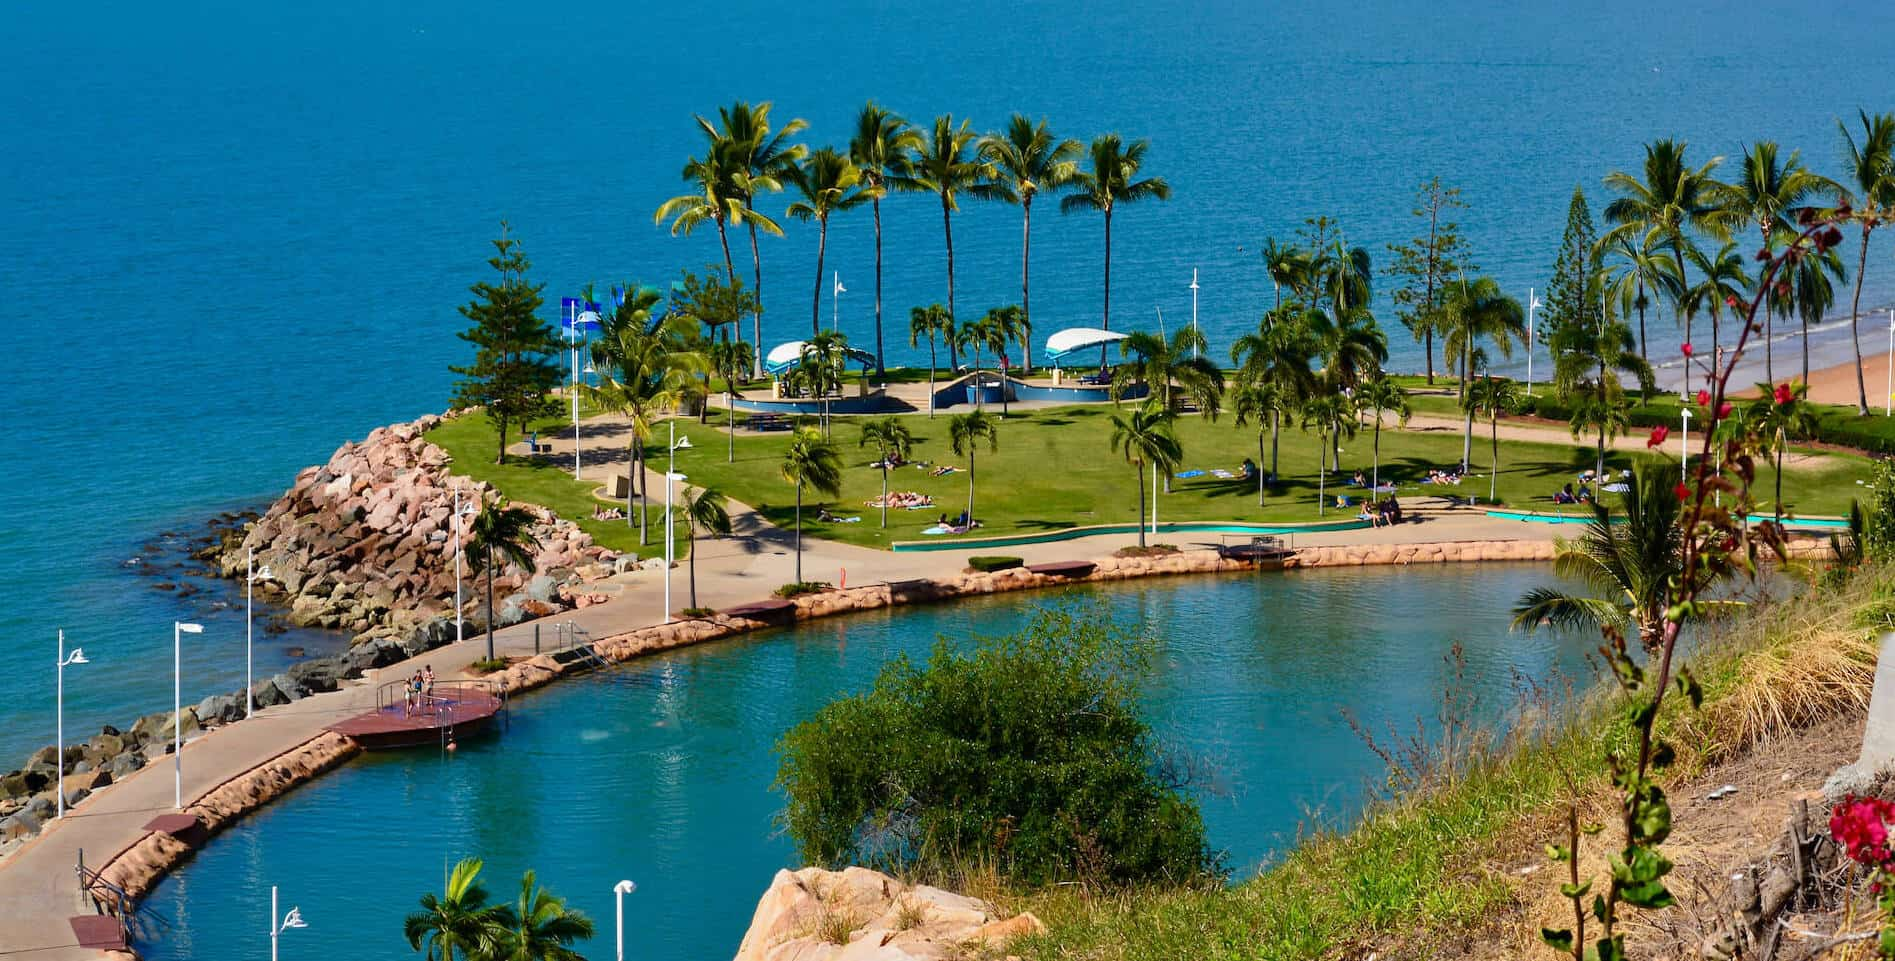 5 Free And Easy Things To Do In Townsville With The Kids